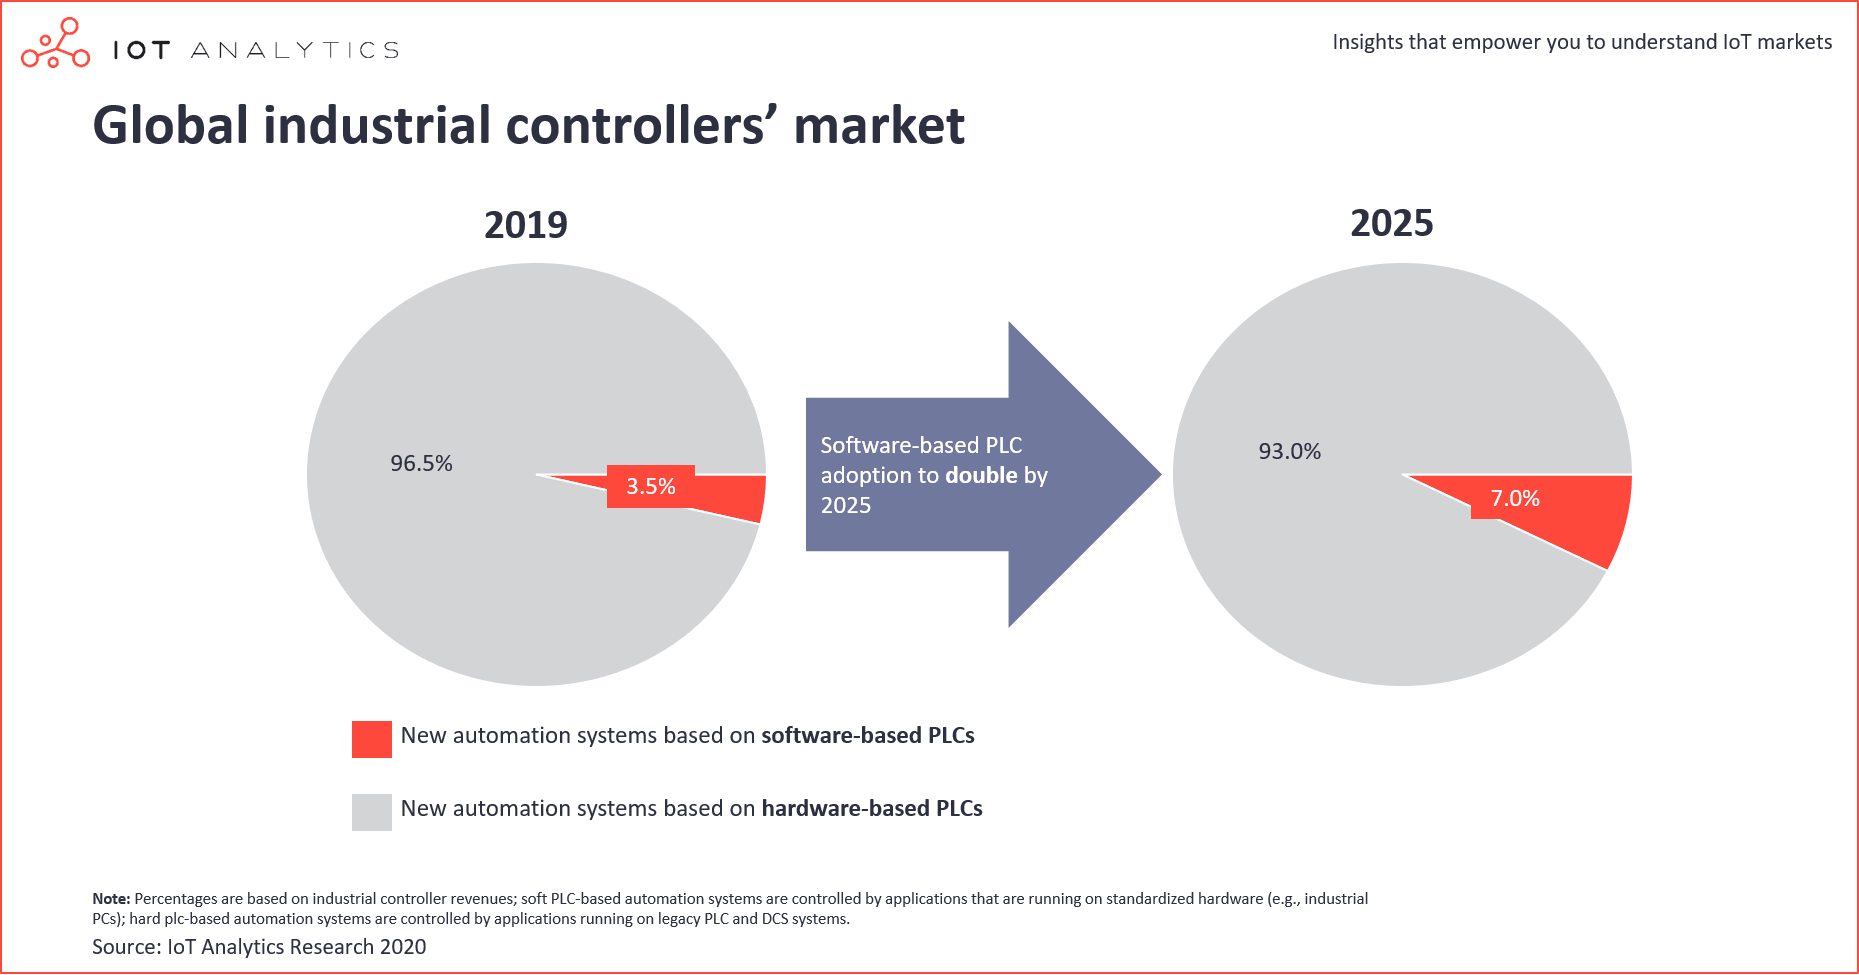 Soft PLCs - Global industrial controllers market